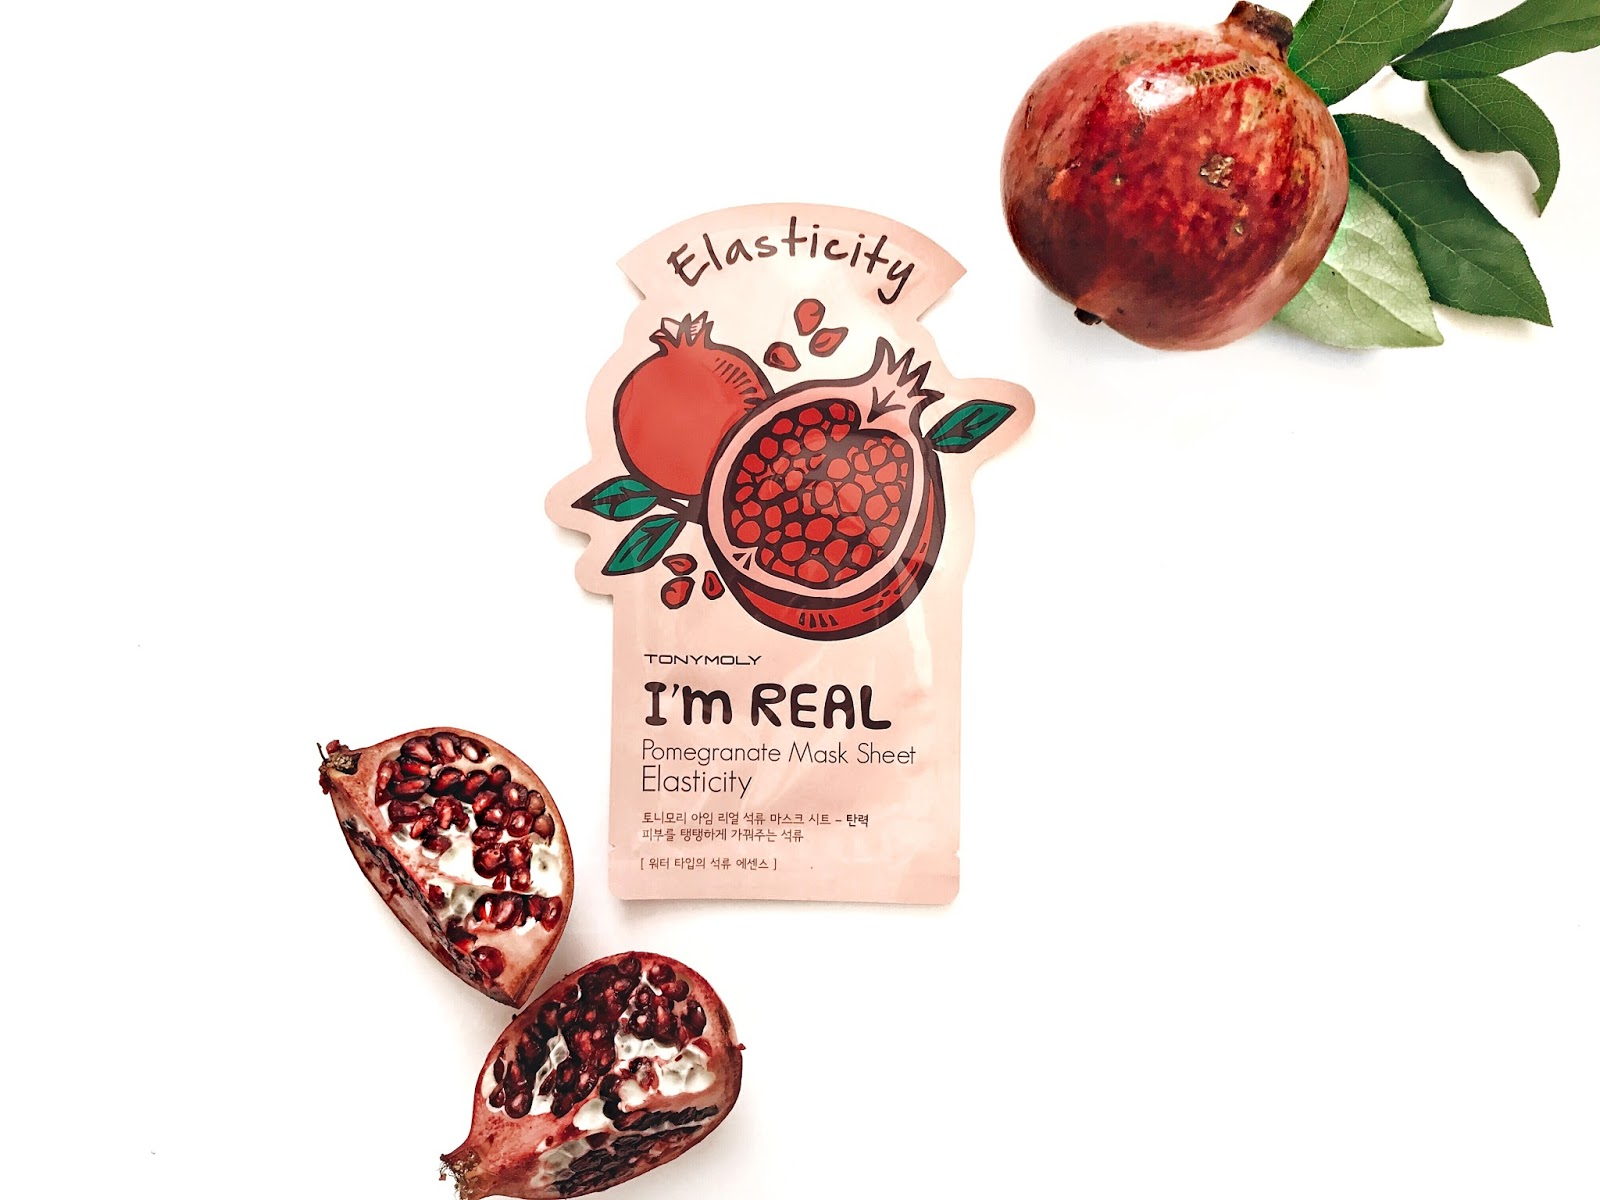 Tony Moly It's Real Pomegranate Elasticity Sheet Mask reviewed by The Jen Project